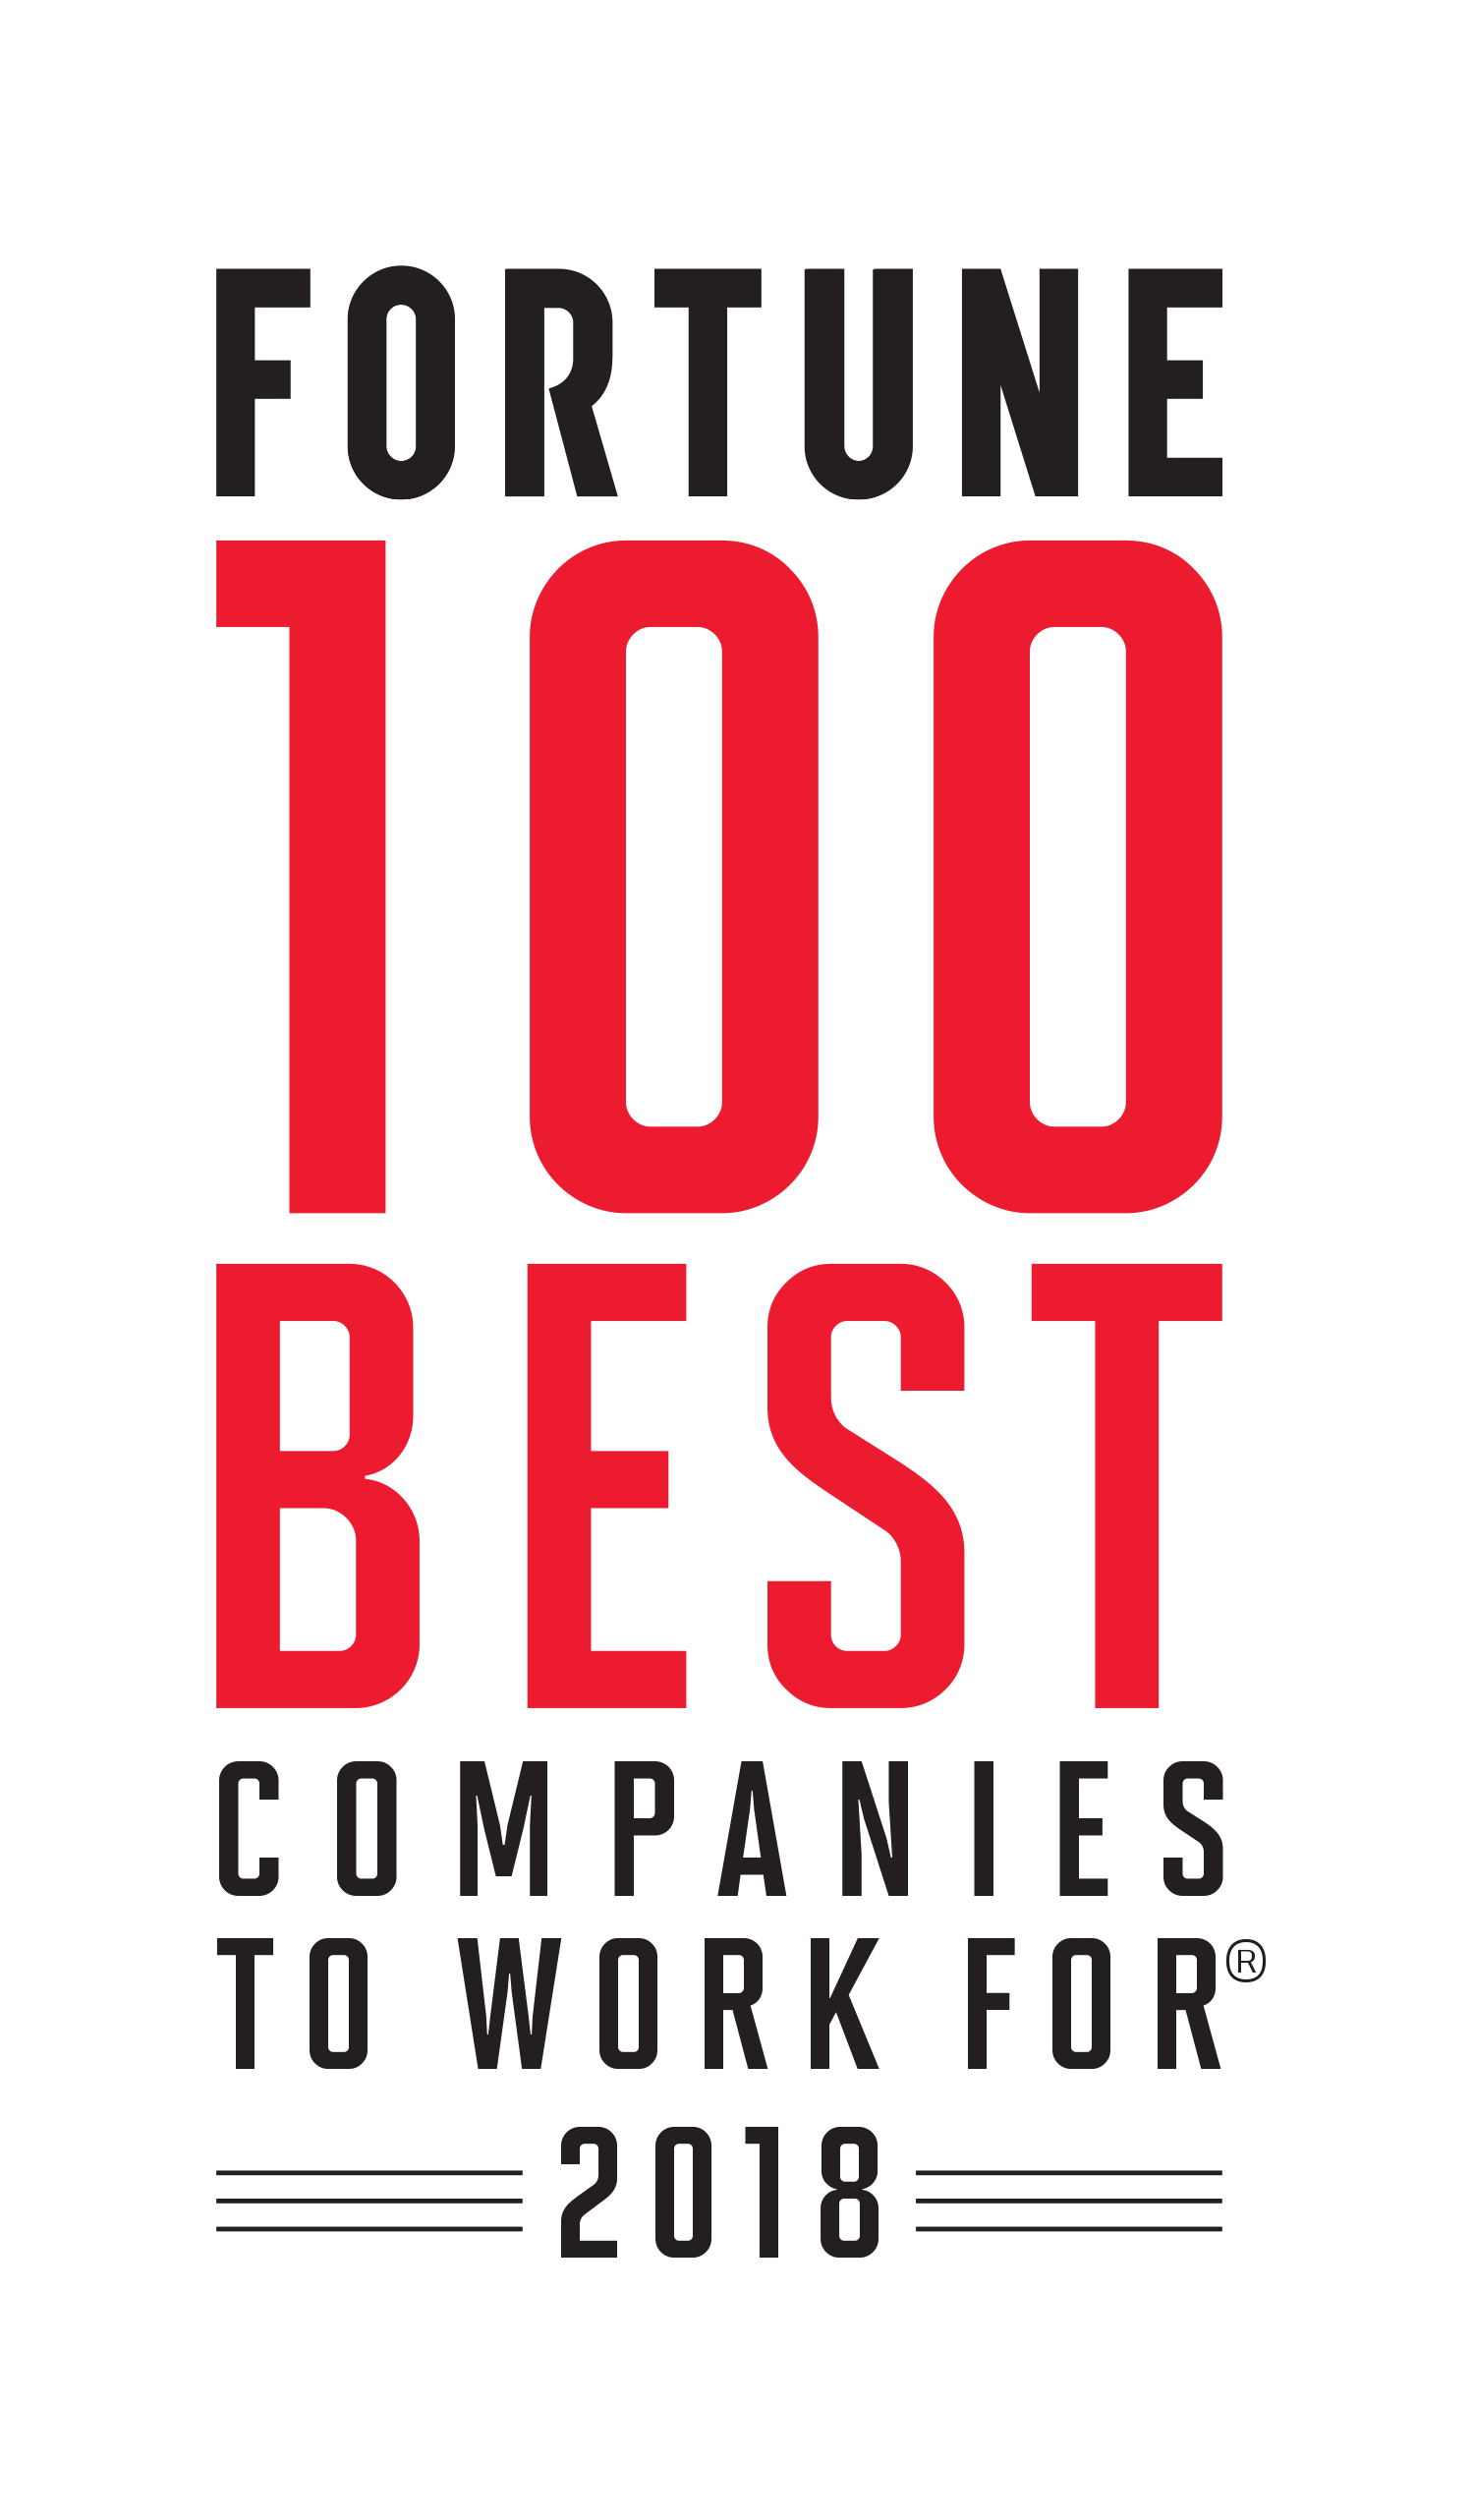 Fortune 100 Best Companies To Work ForR 2018